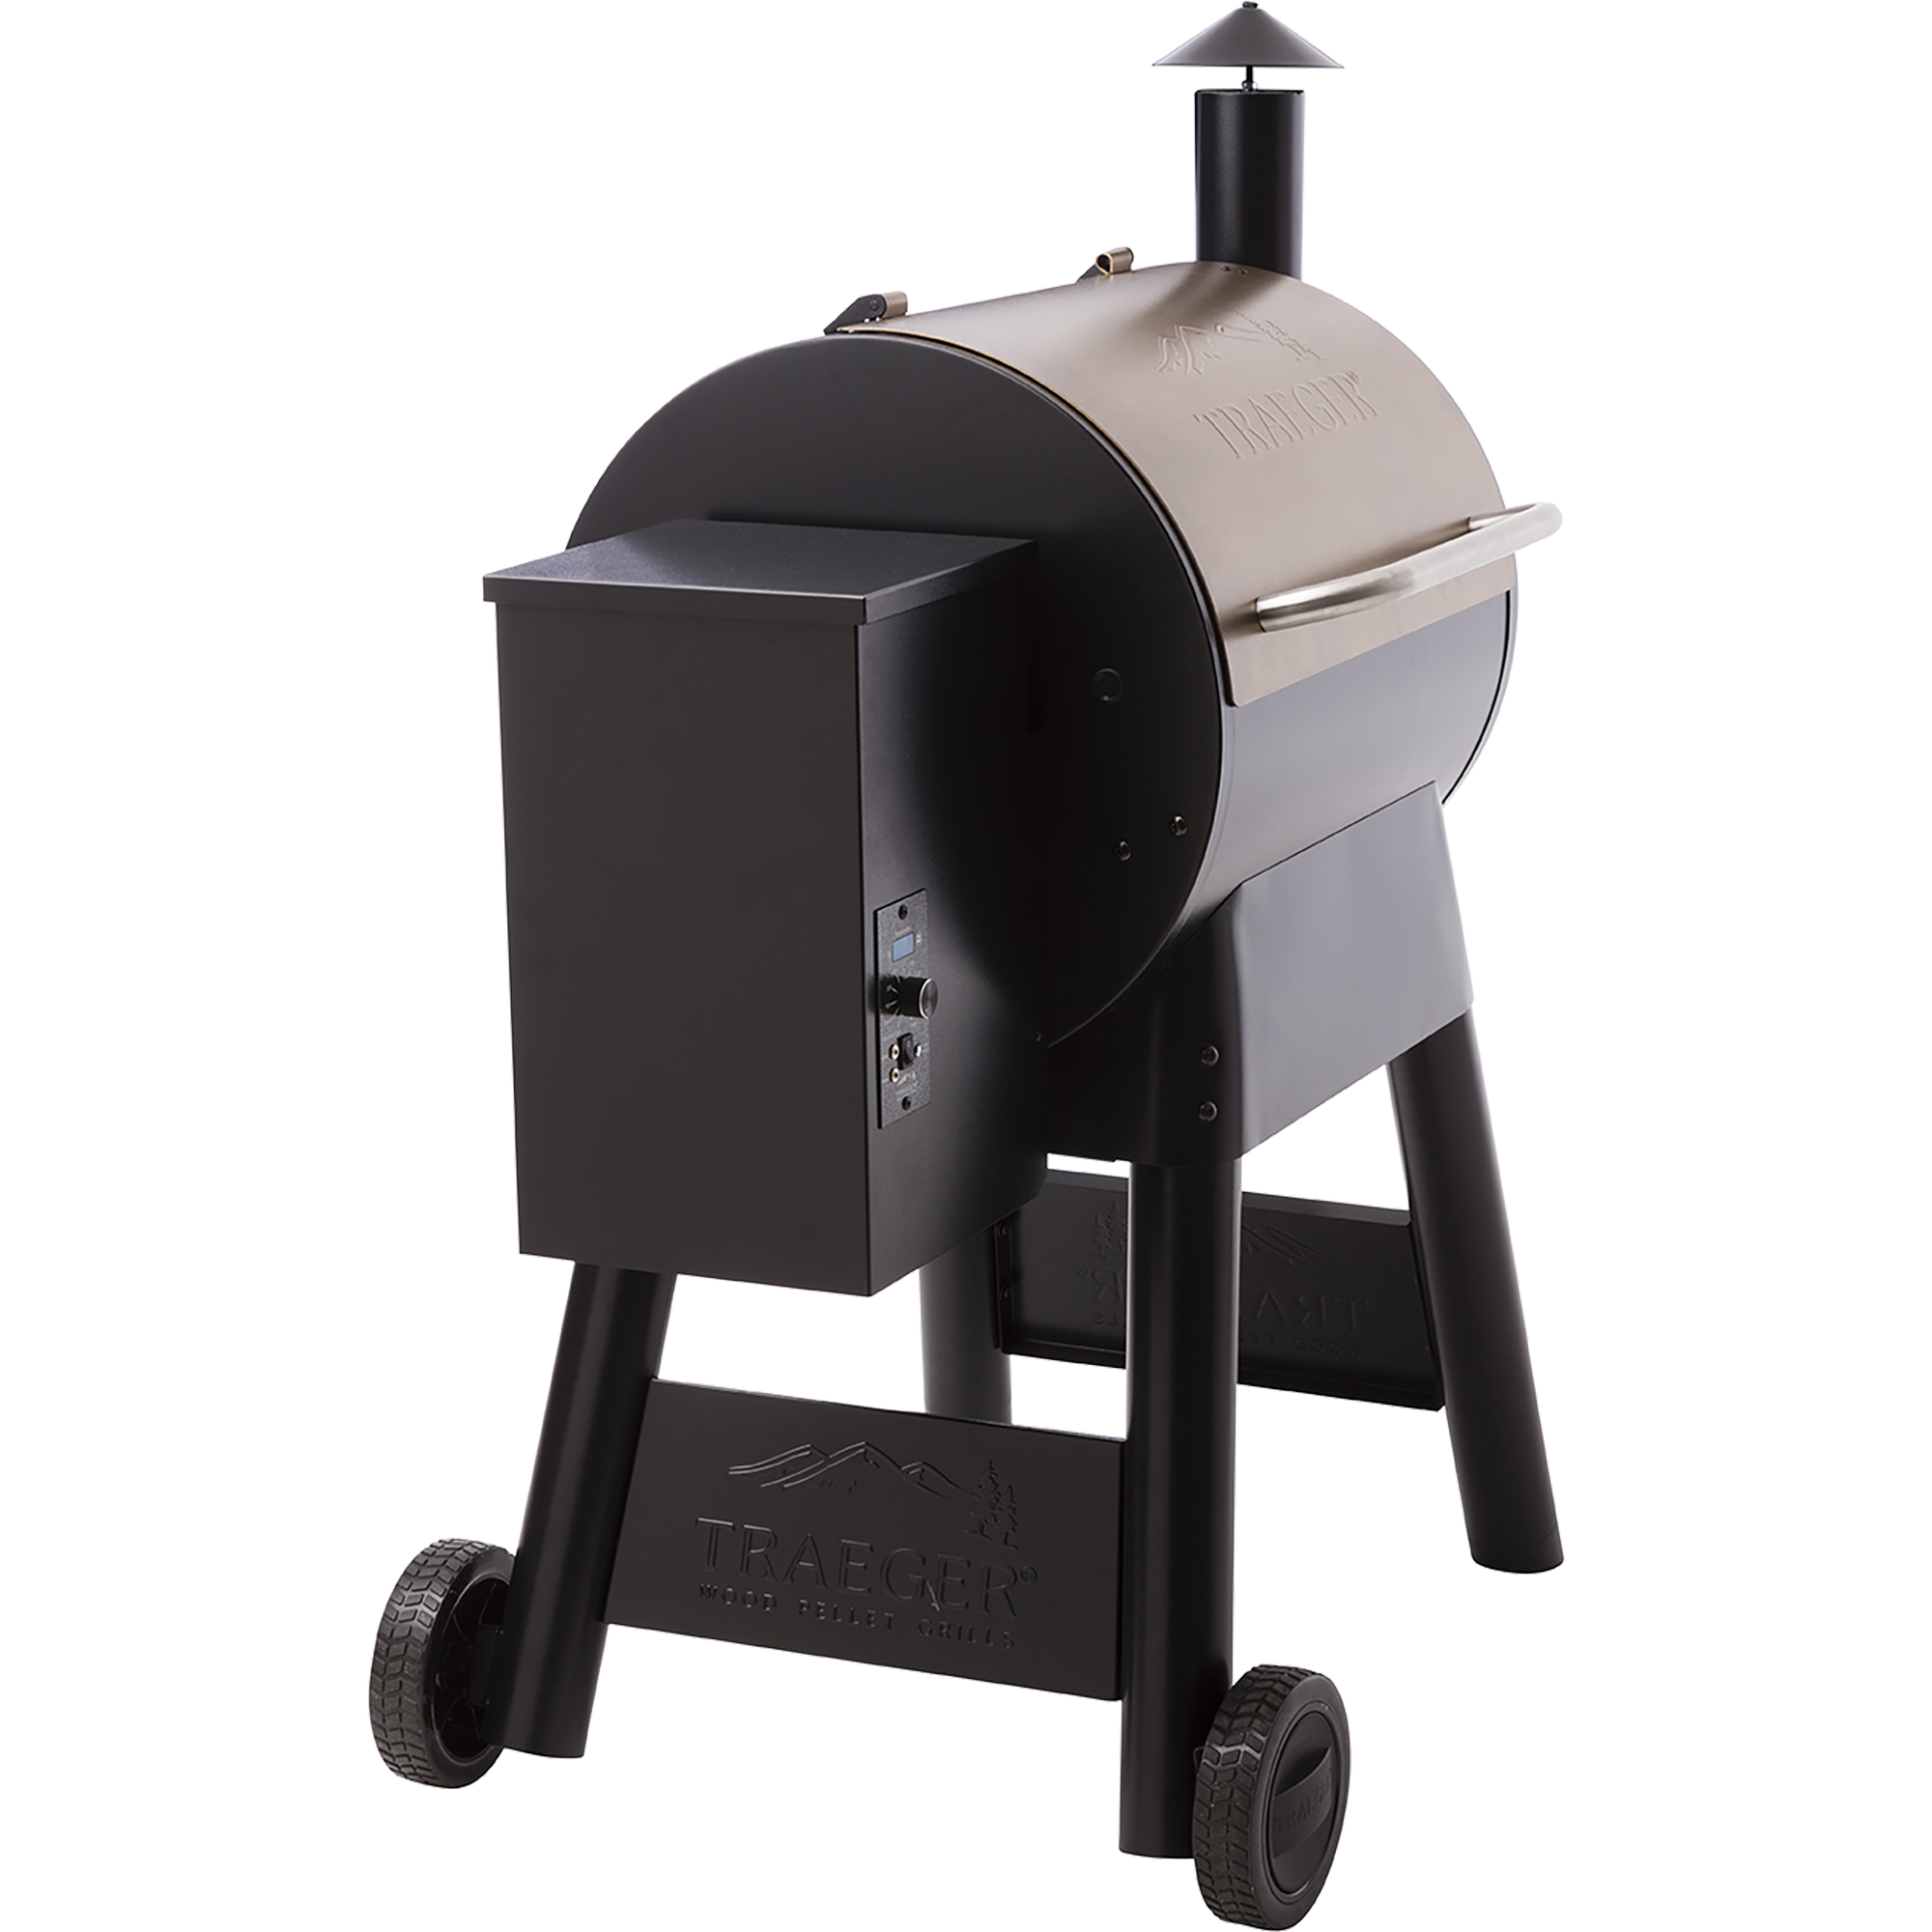 outside view of traeger grill pro series 22 pellet grill spa brokers